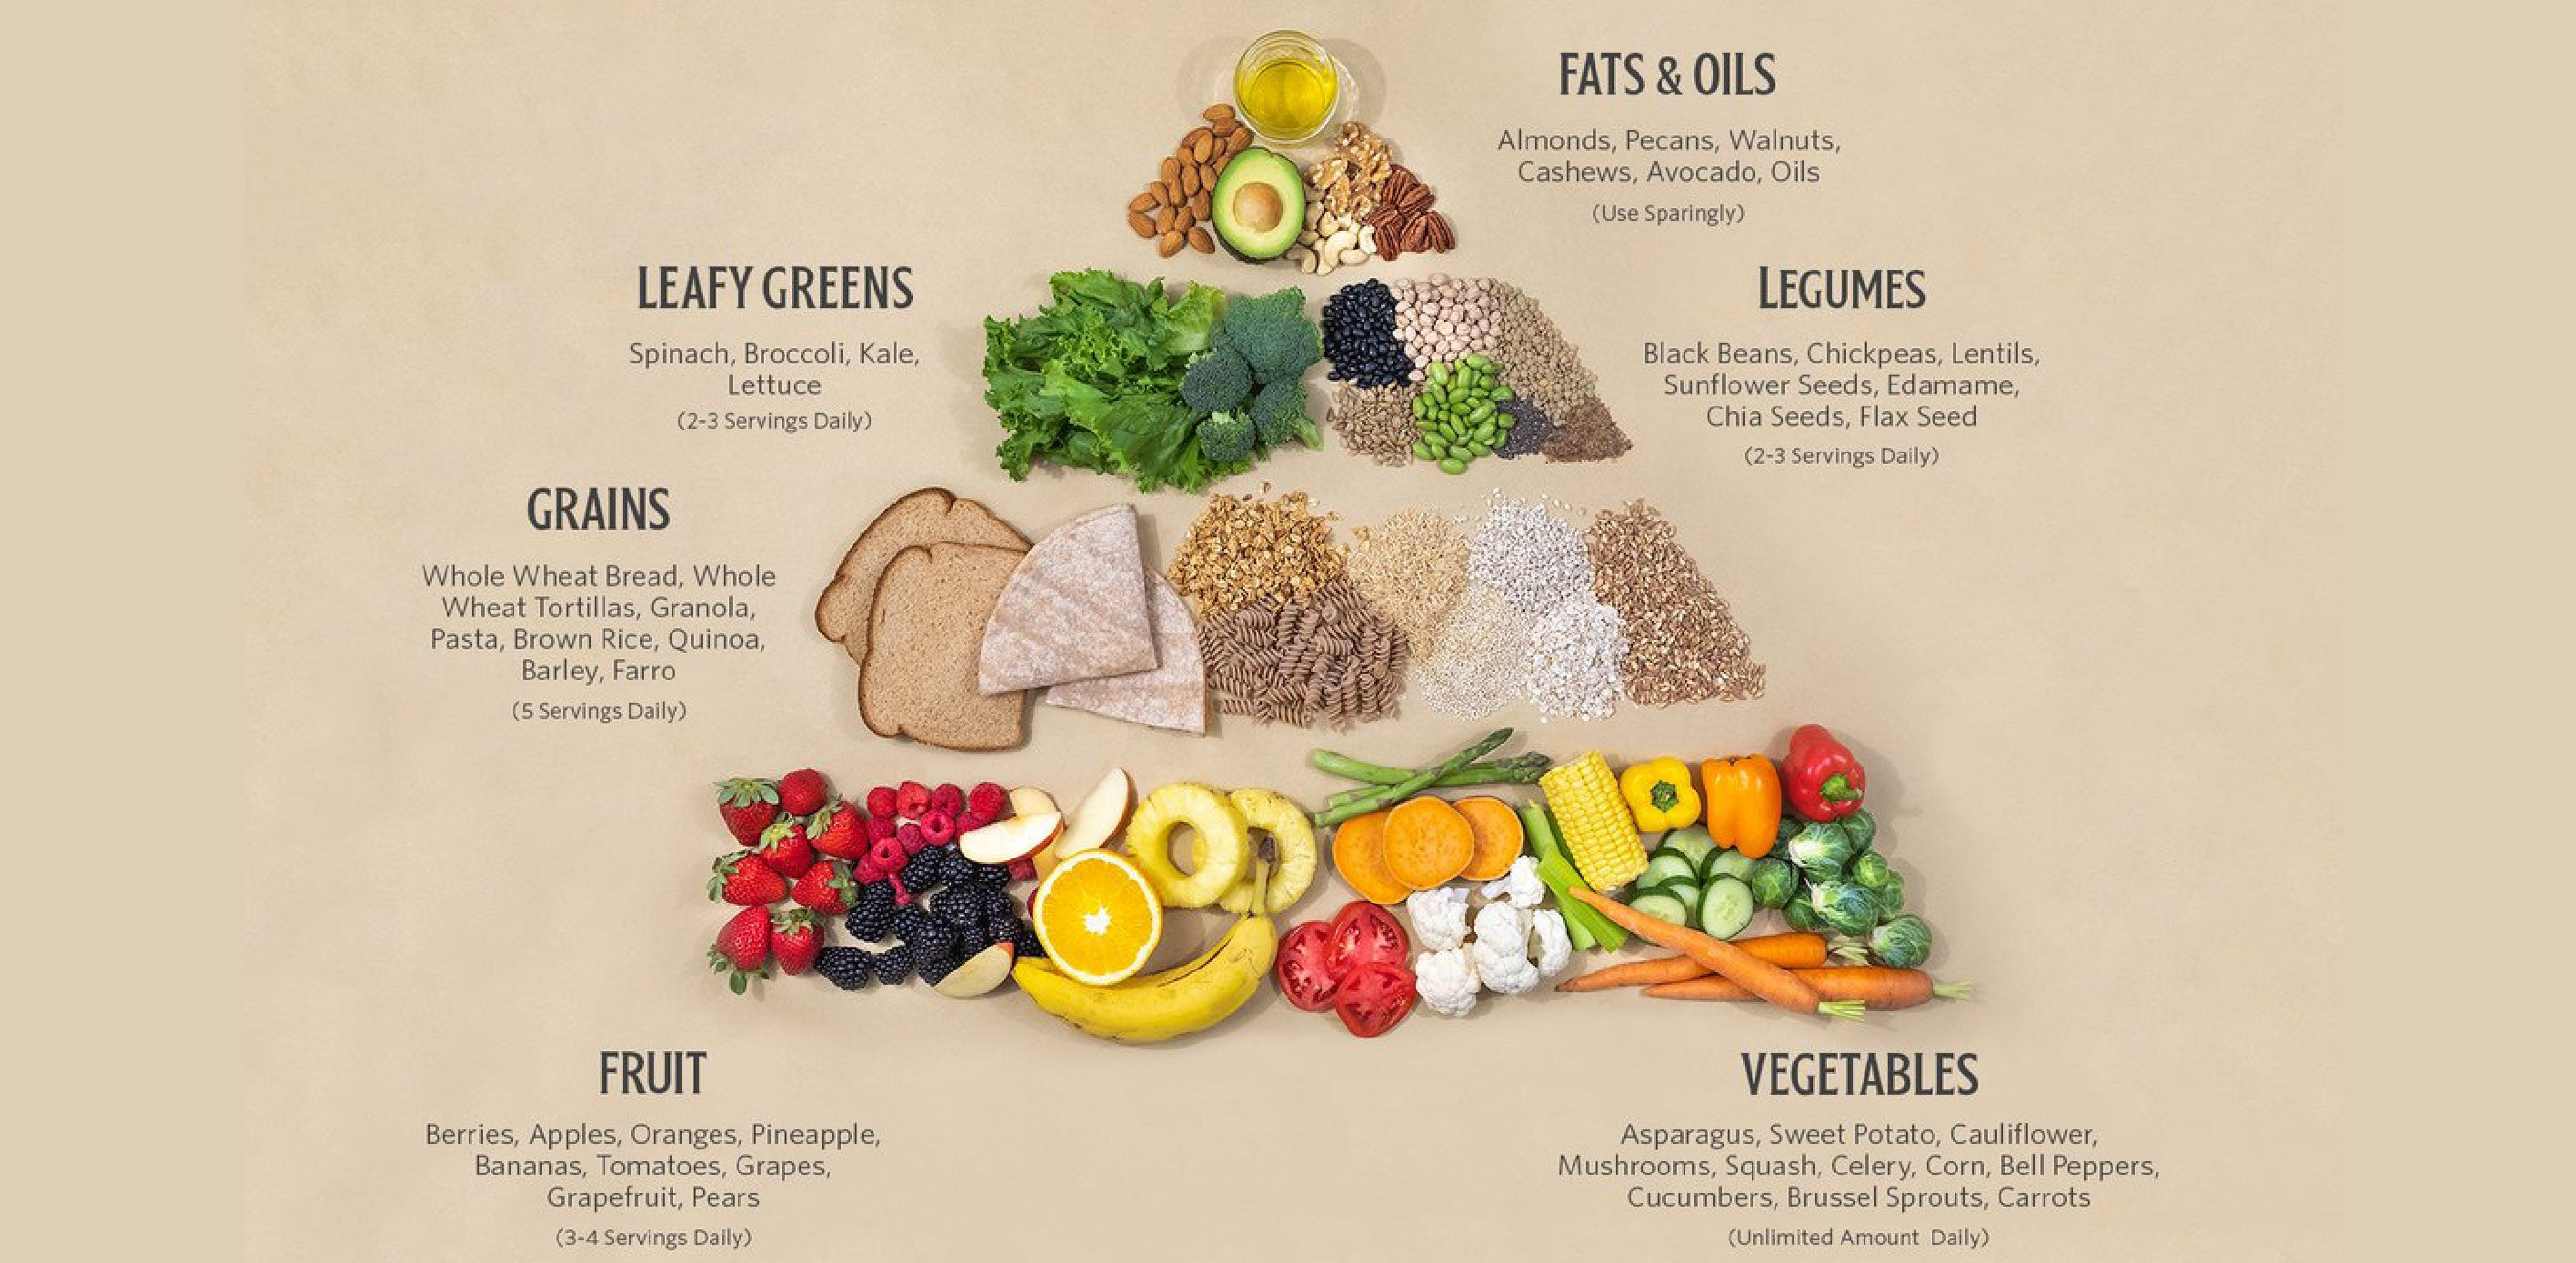 The vegan nutritionist - vegan diet pyramid